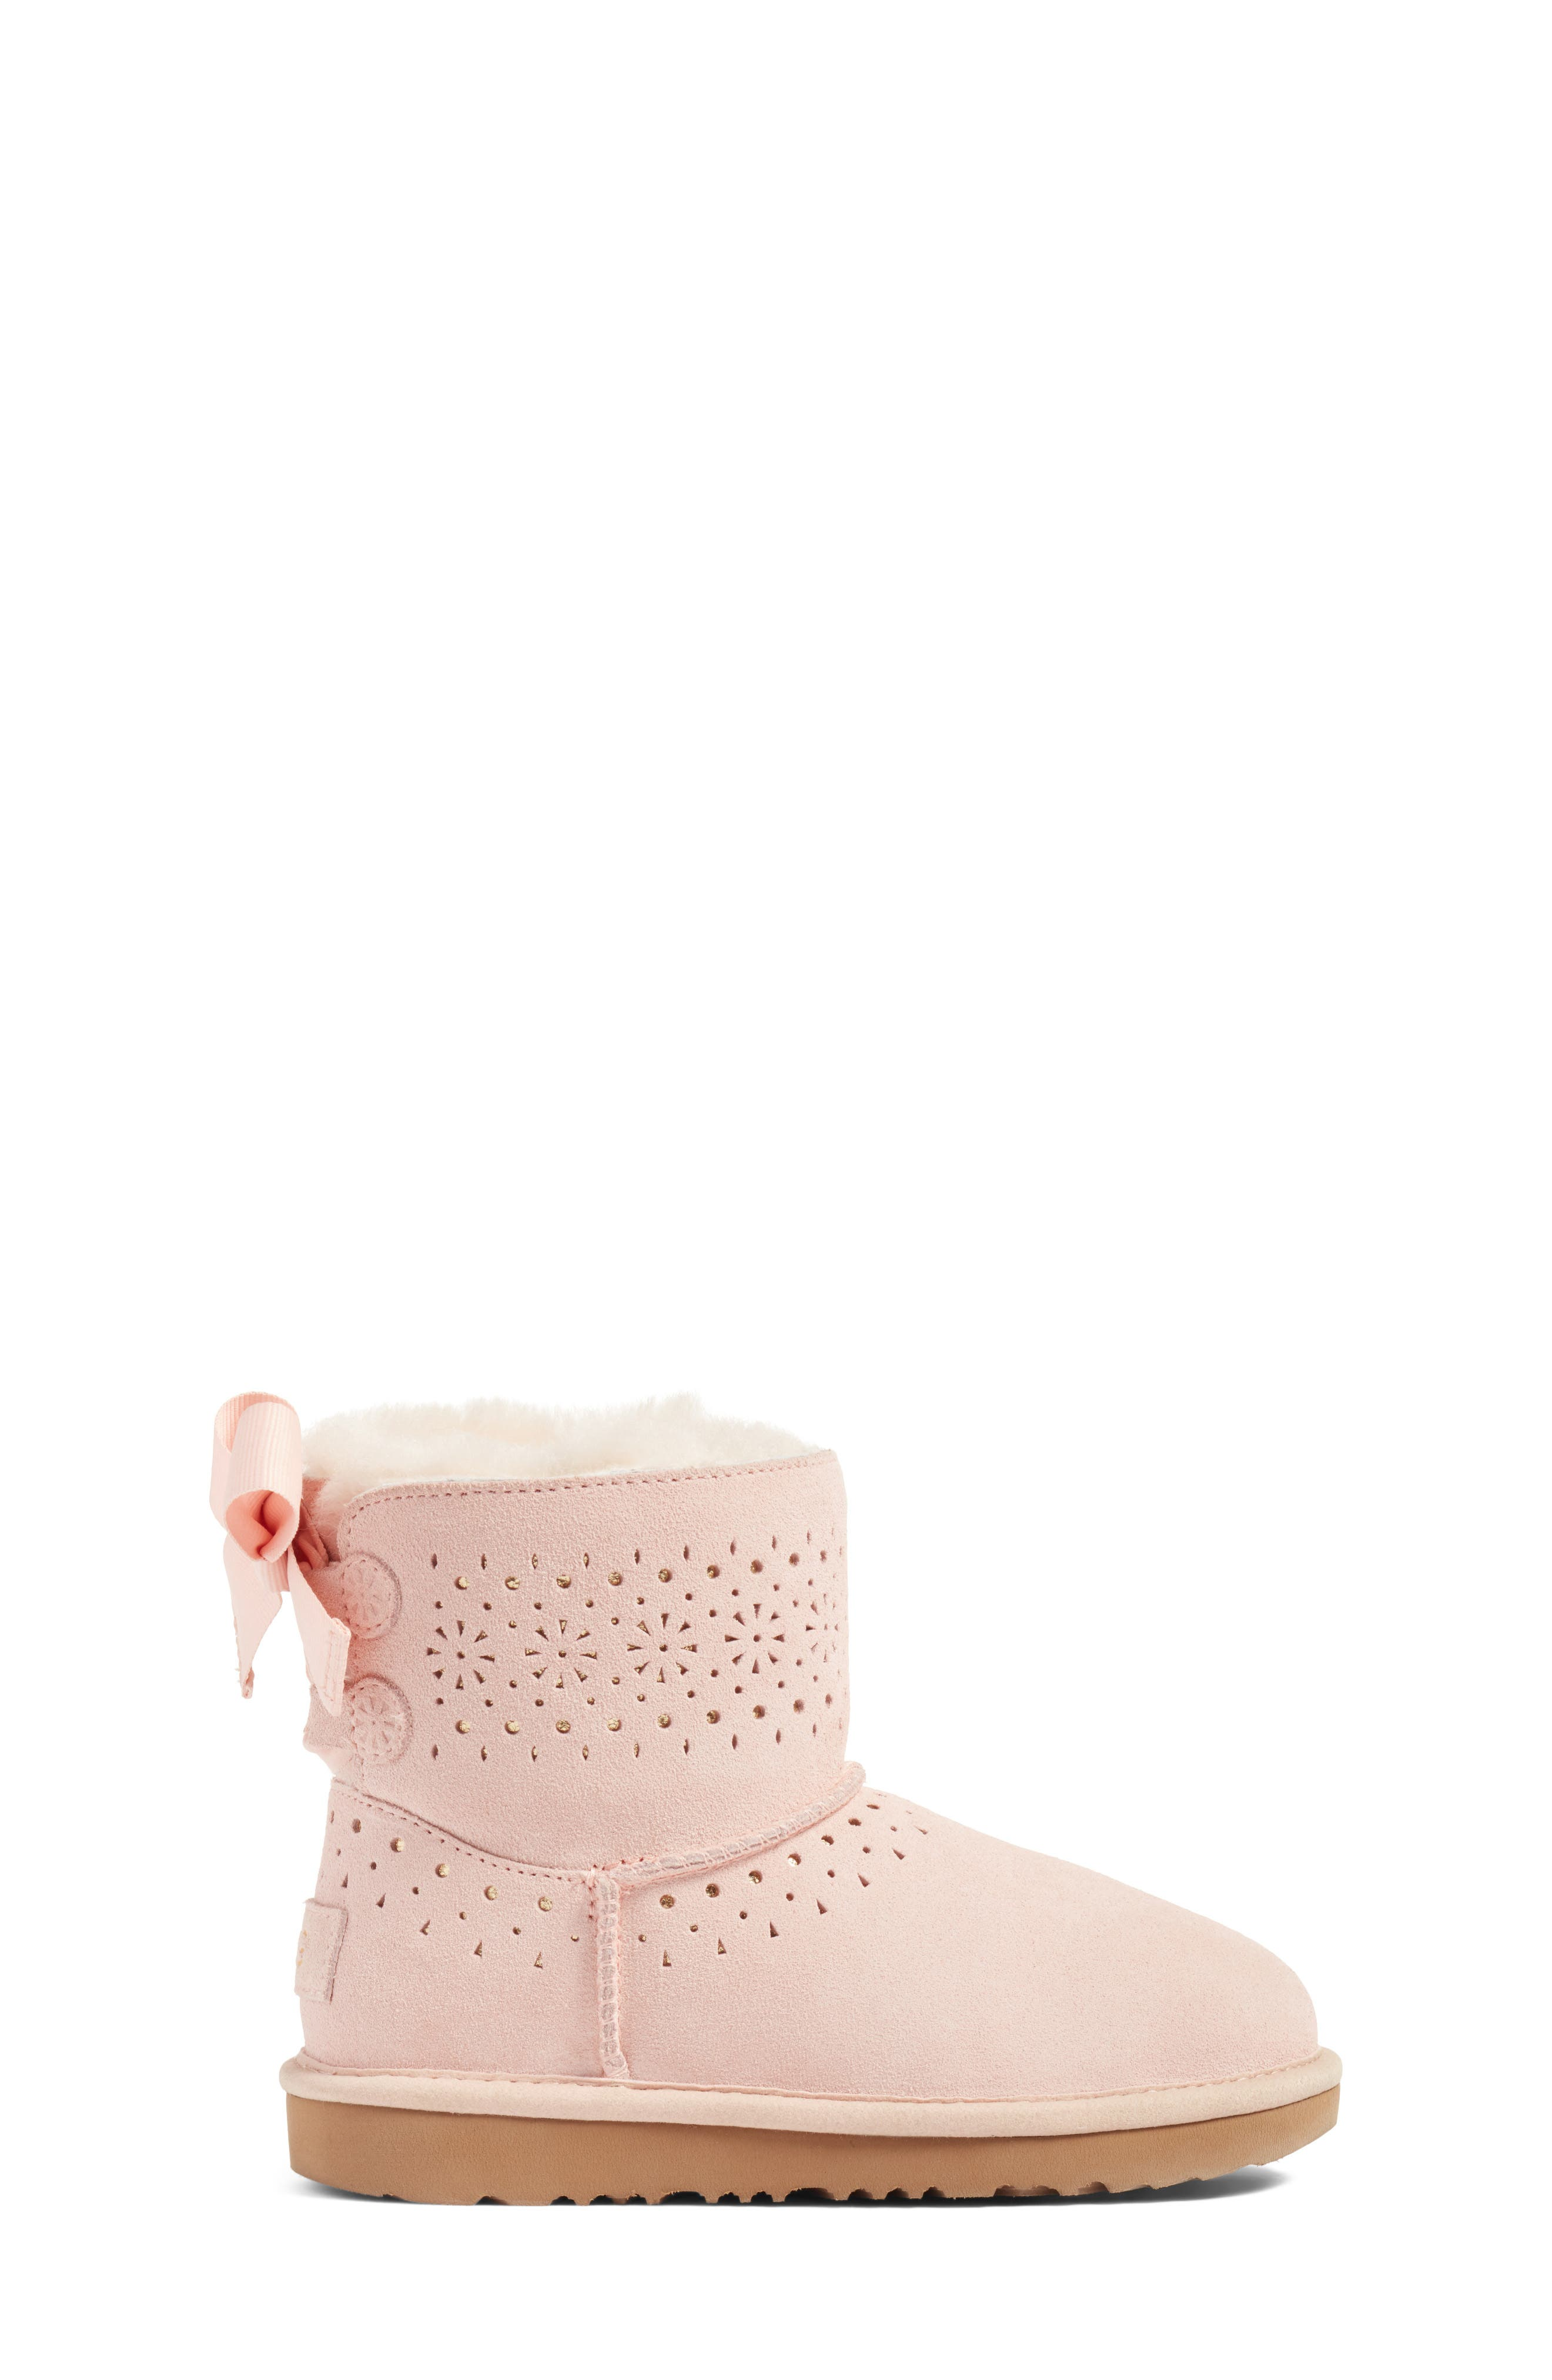 Dae Perforated Tie Back Boot,                             Alternate thumbnail 4, color,                             Baby Pink